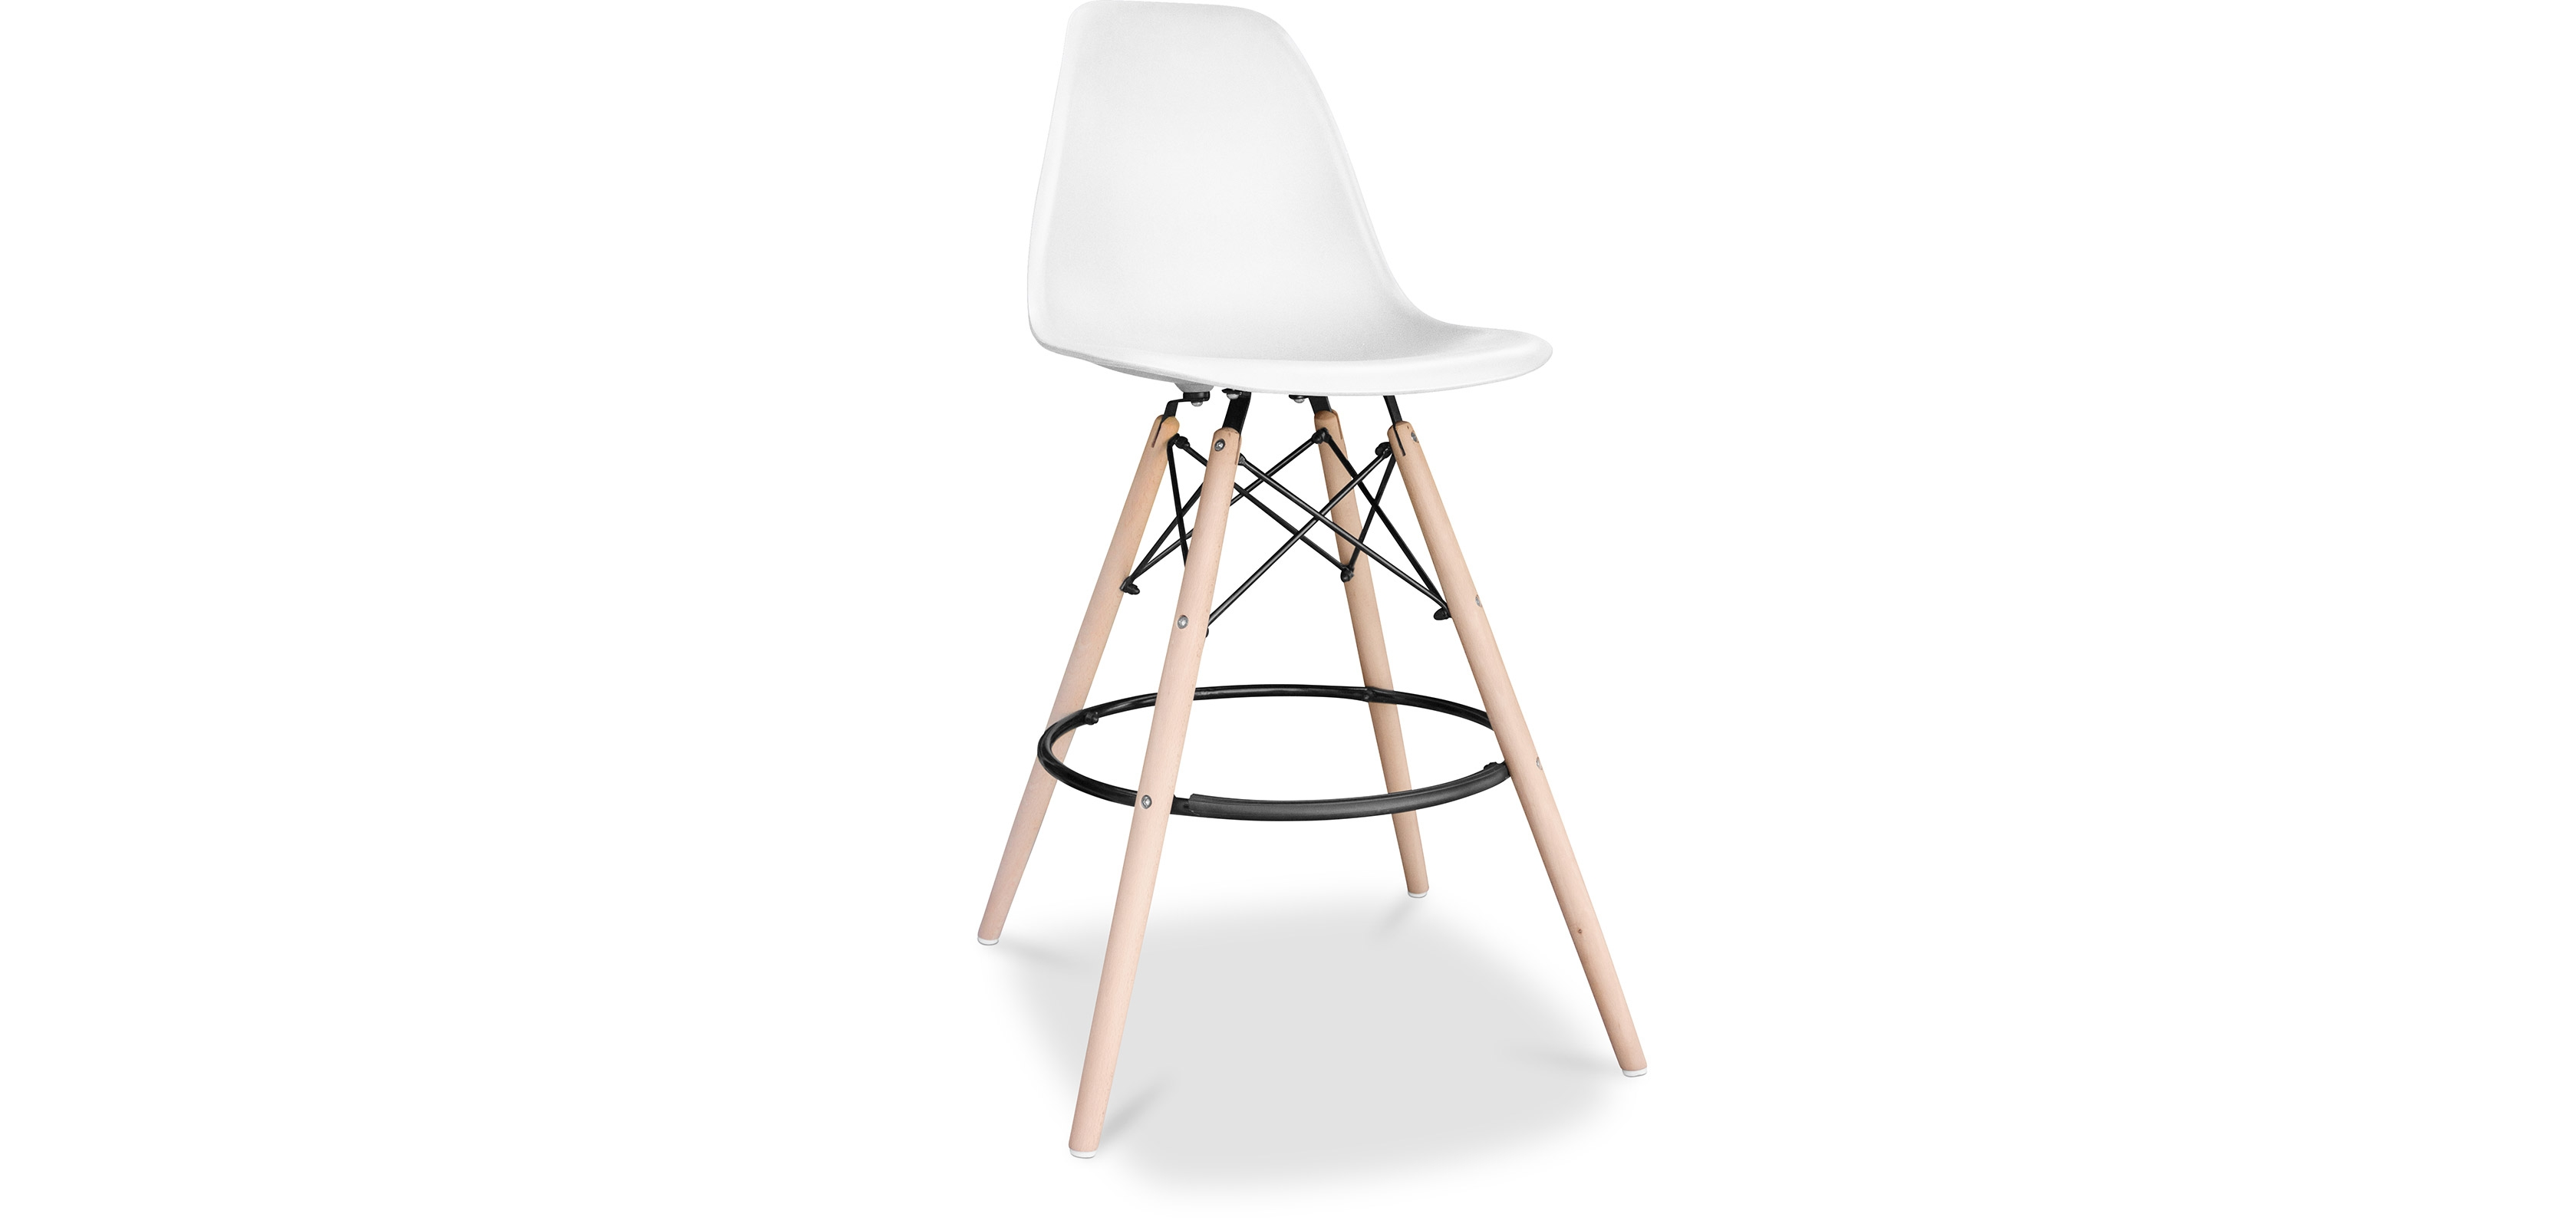 Buy Premium Deswood Bar Stool - Matt White 55755 - in the UK